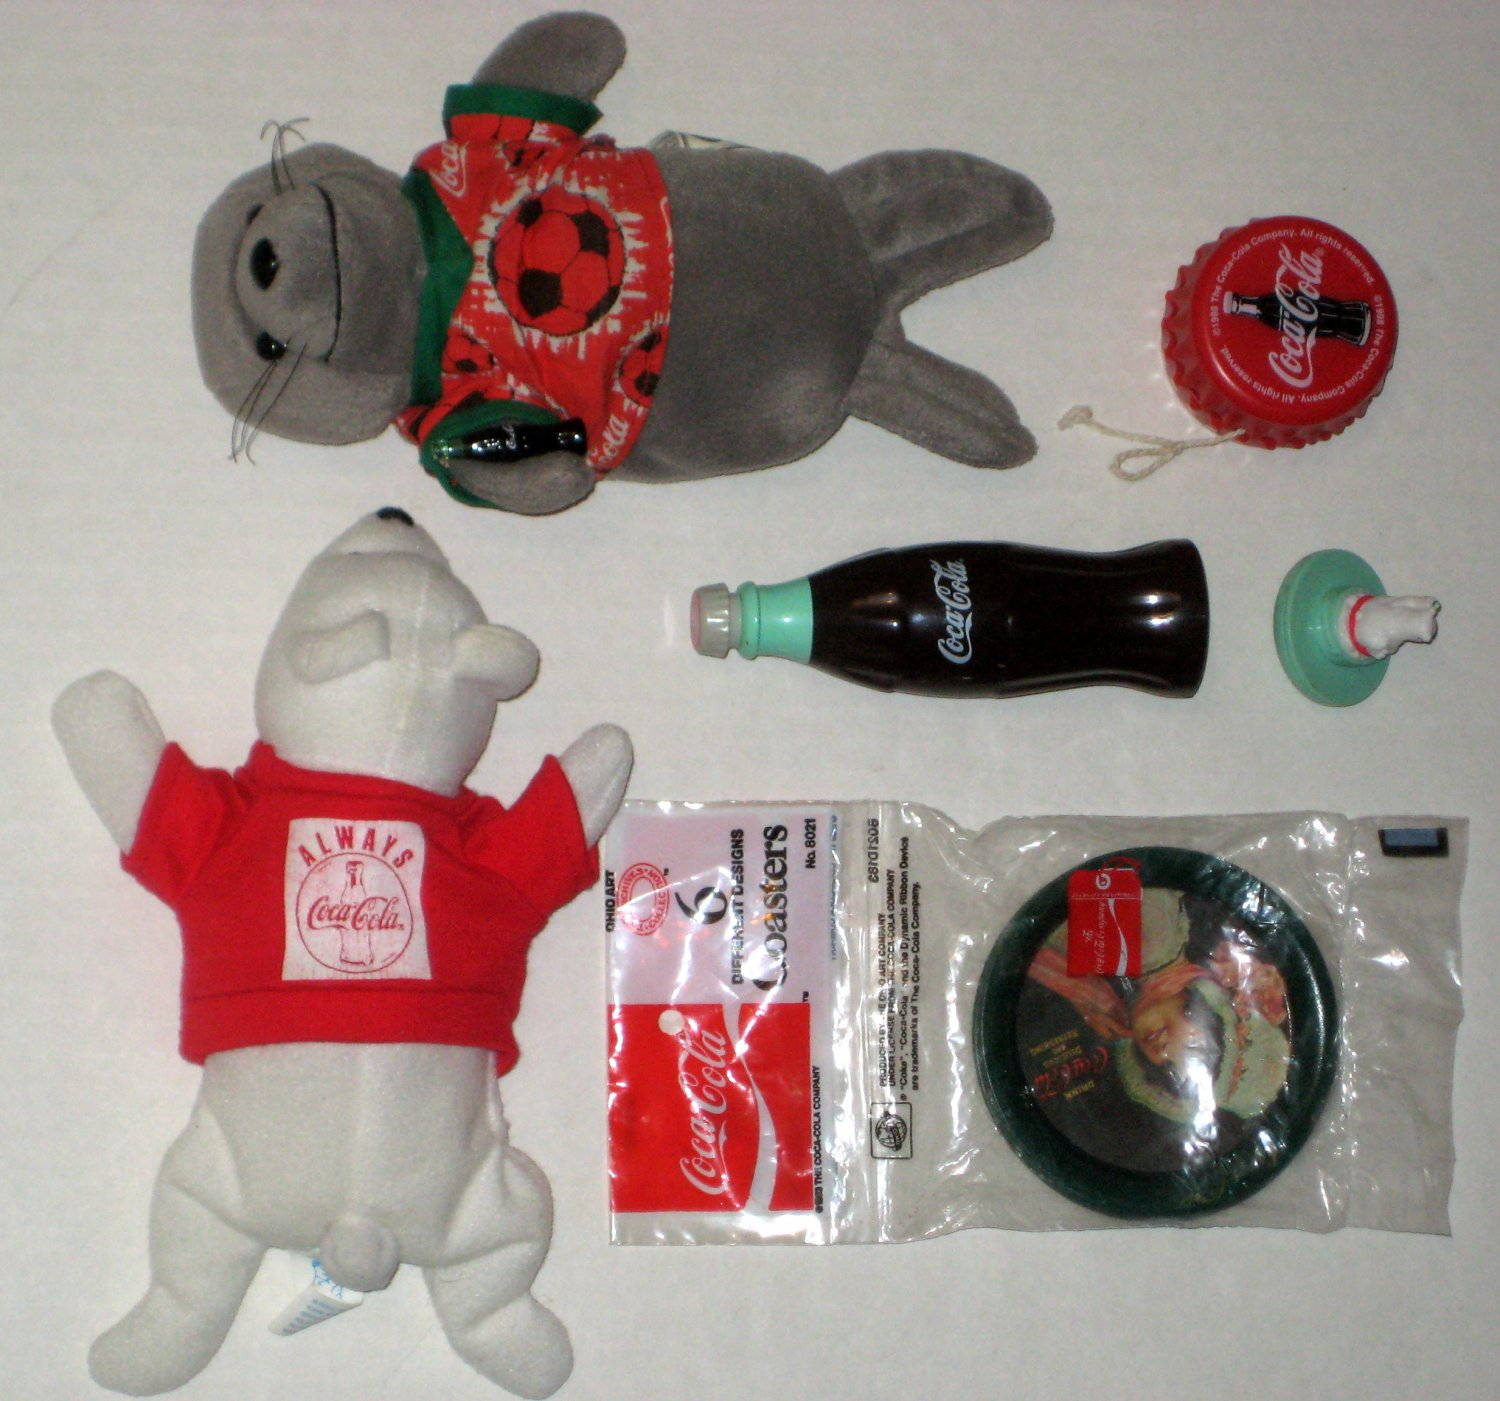 Coca Cola Collectibles Lot Coke Yo Coasters Plush Spinning Bottle Top Toy Velcro Ball Burger King